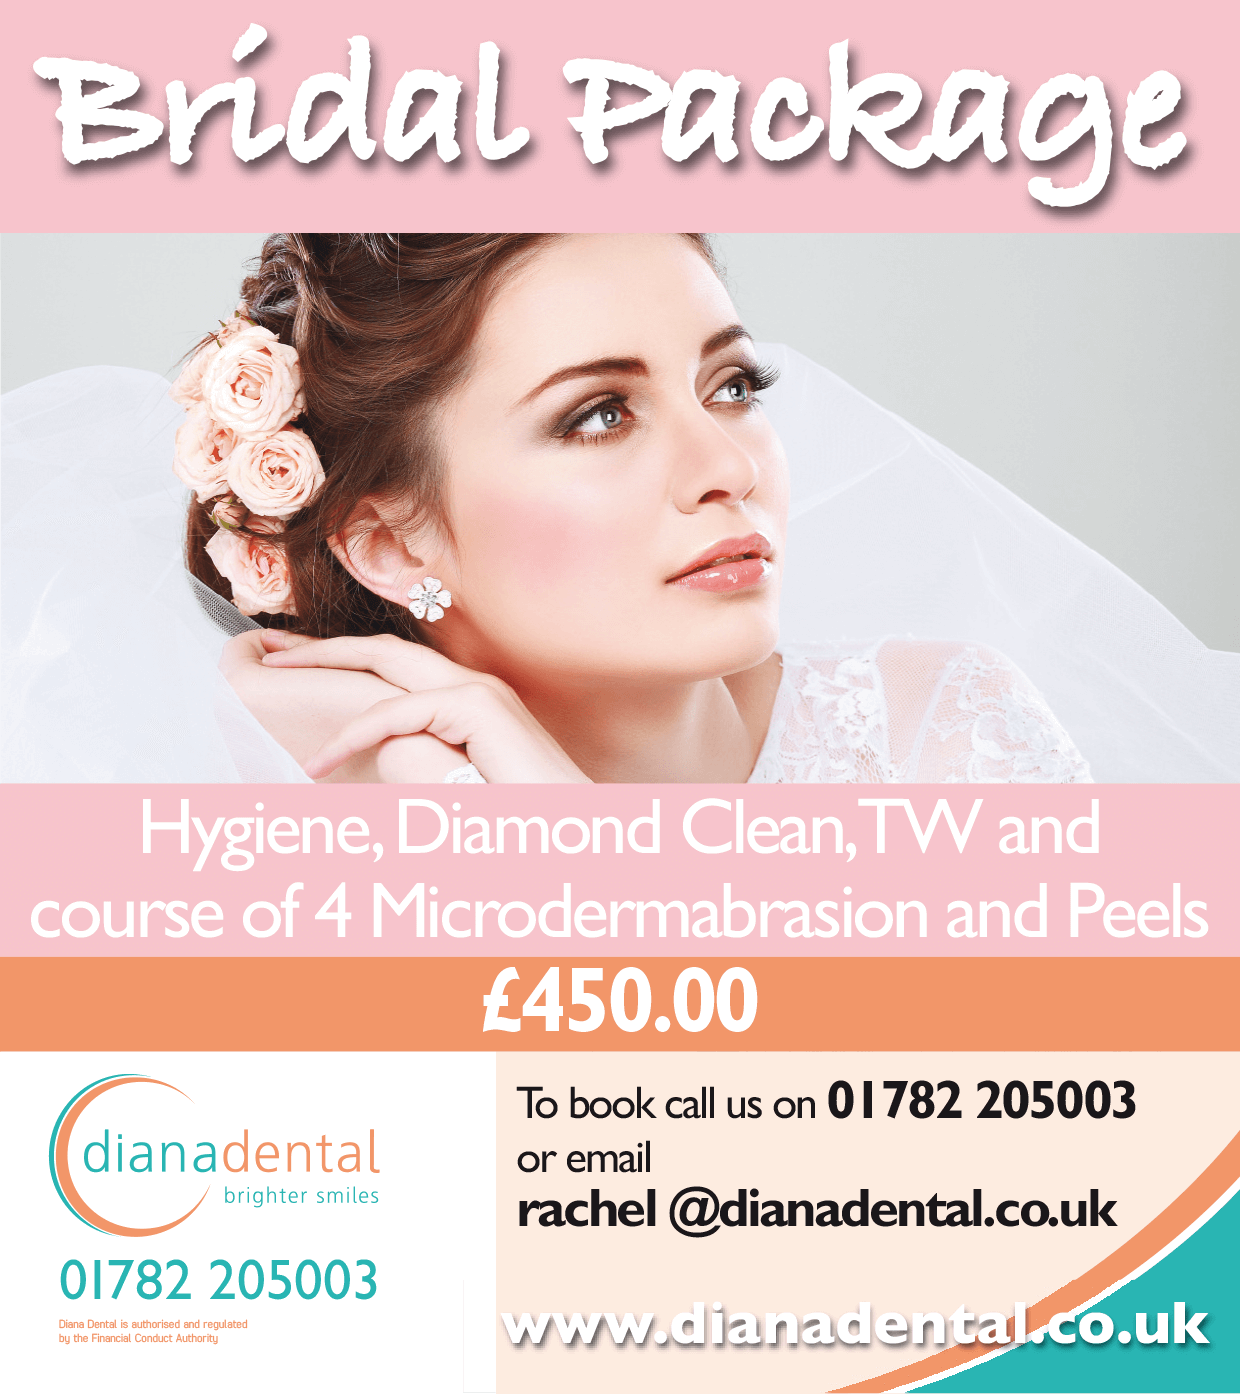 It's Wedding Season! Find Out More About Our Bridal Package